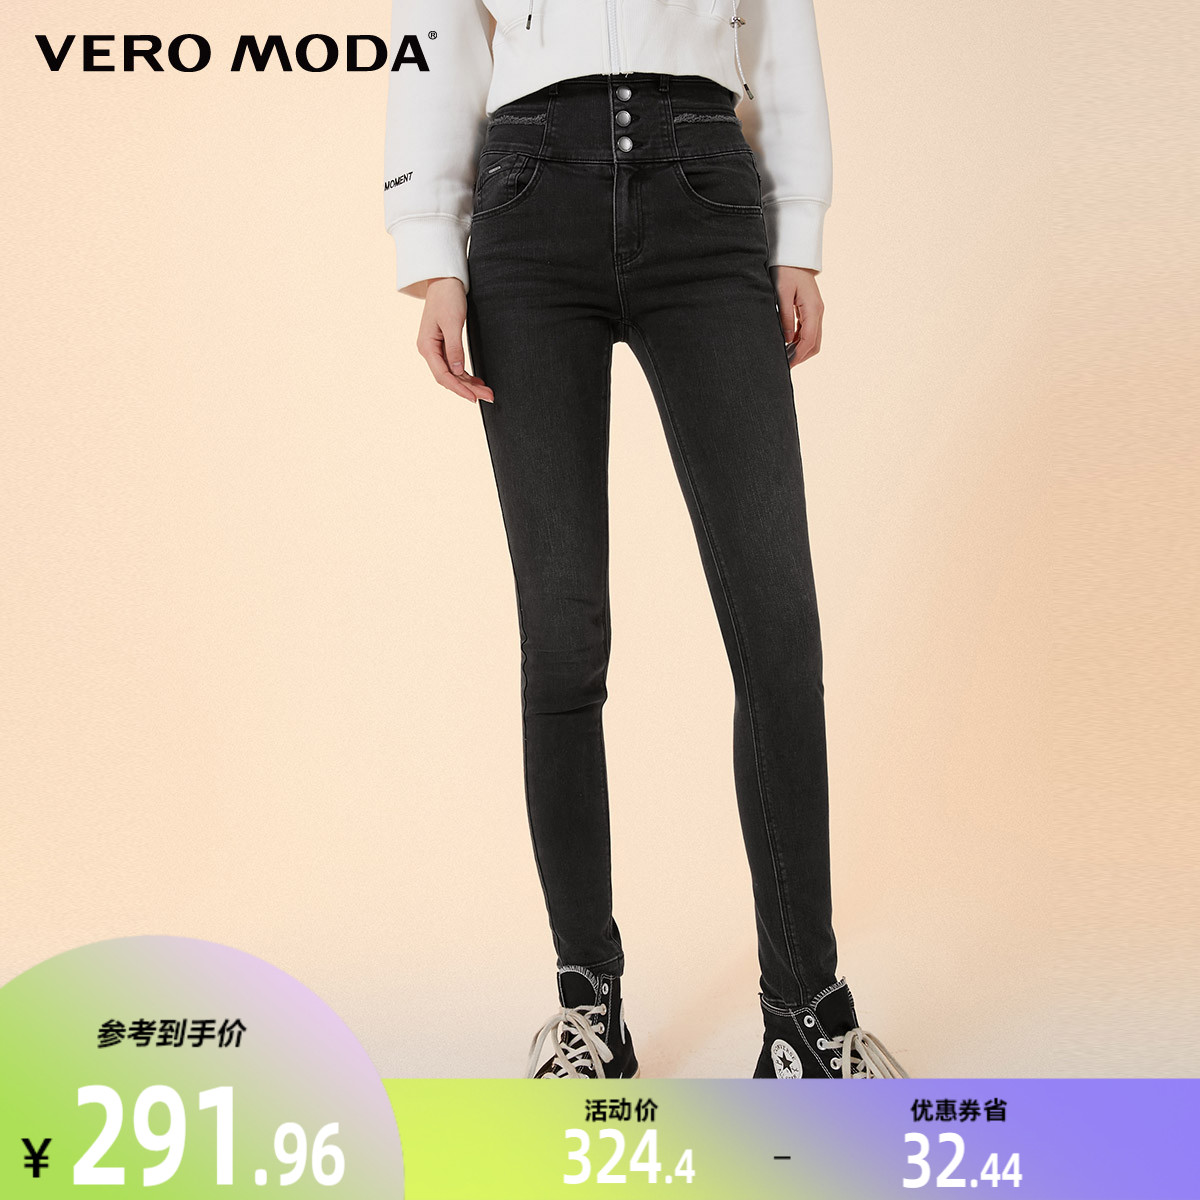 Vero Moda2021 spring and summer new high waist Lycra small feet skinny jeans women 321132004